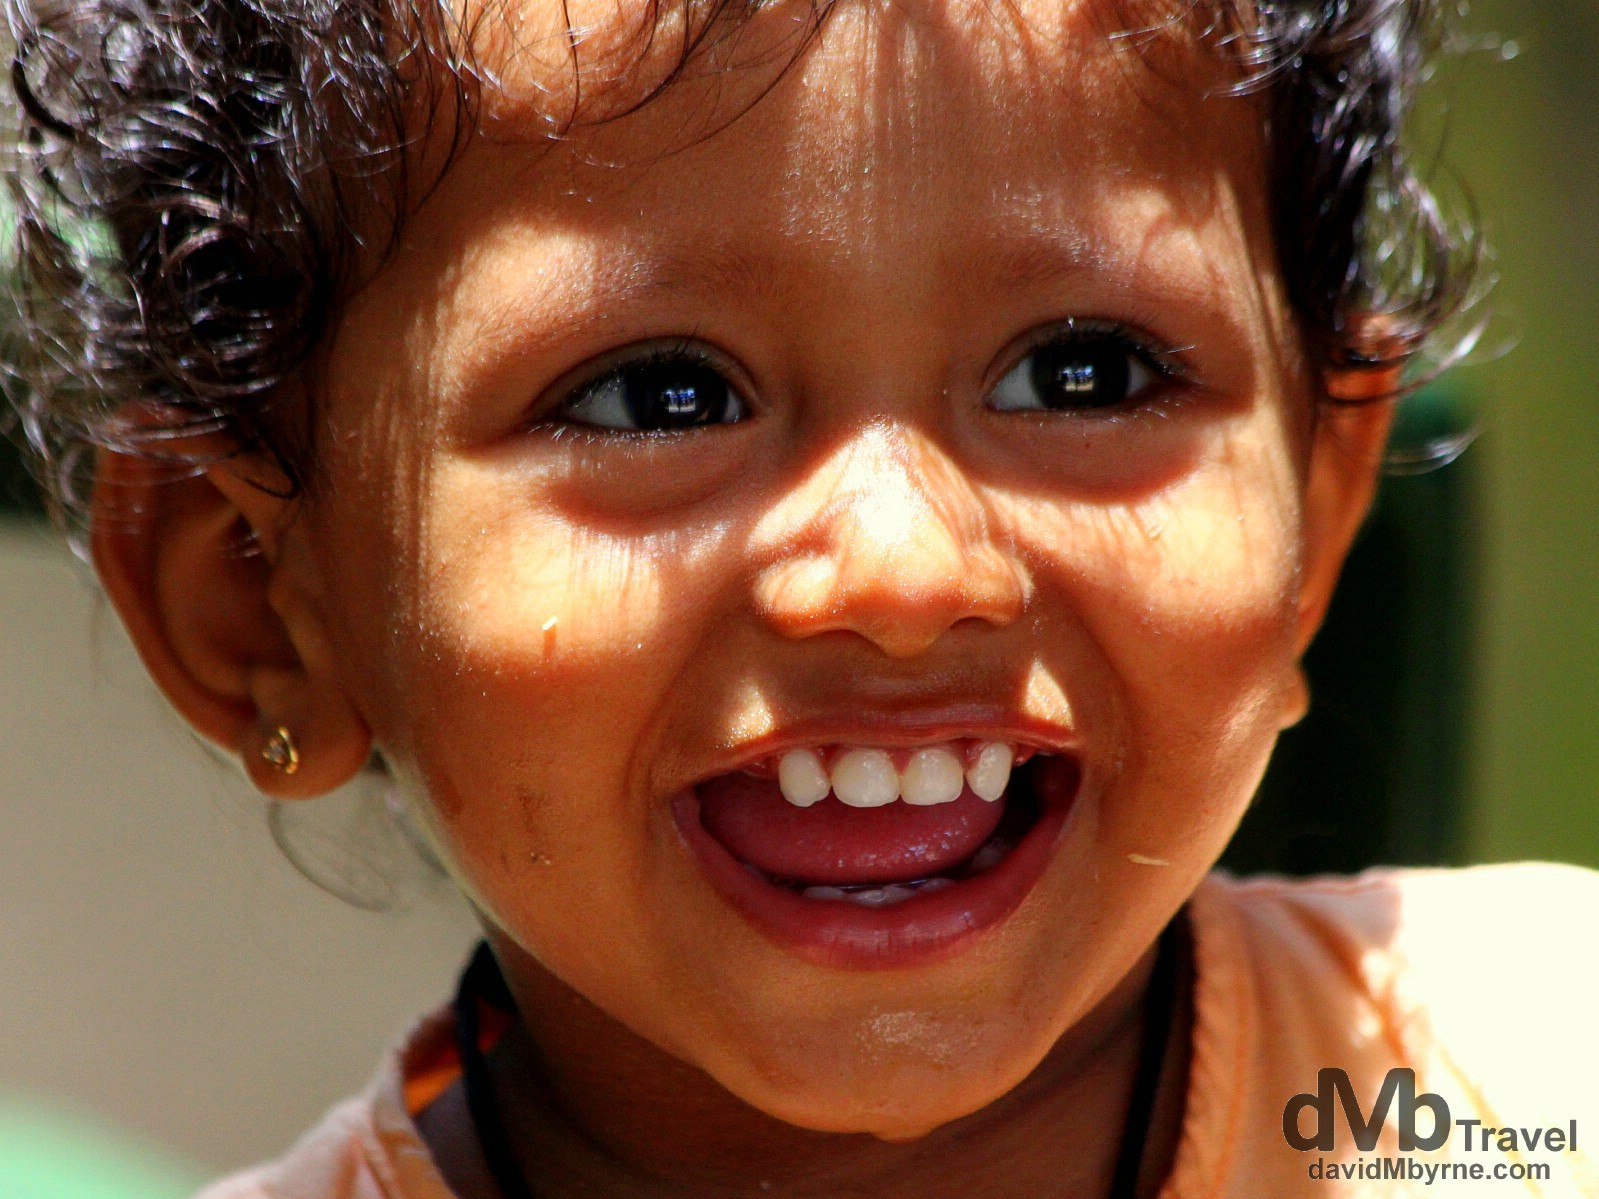 All smiles in the lanes of Unawatuna, Southern Sri Lanka. September 1st 2012.